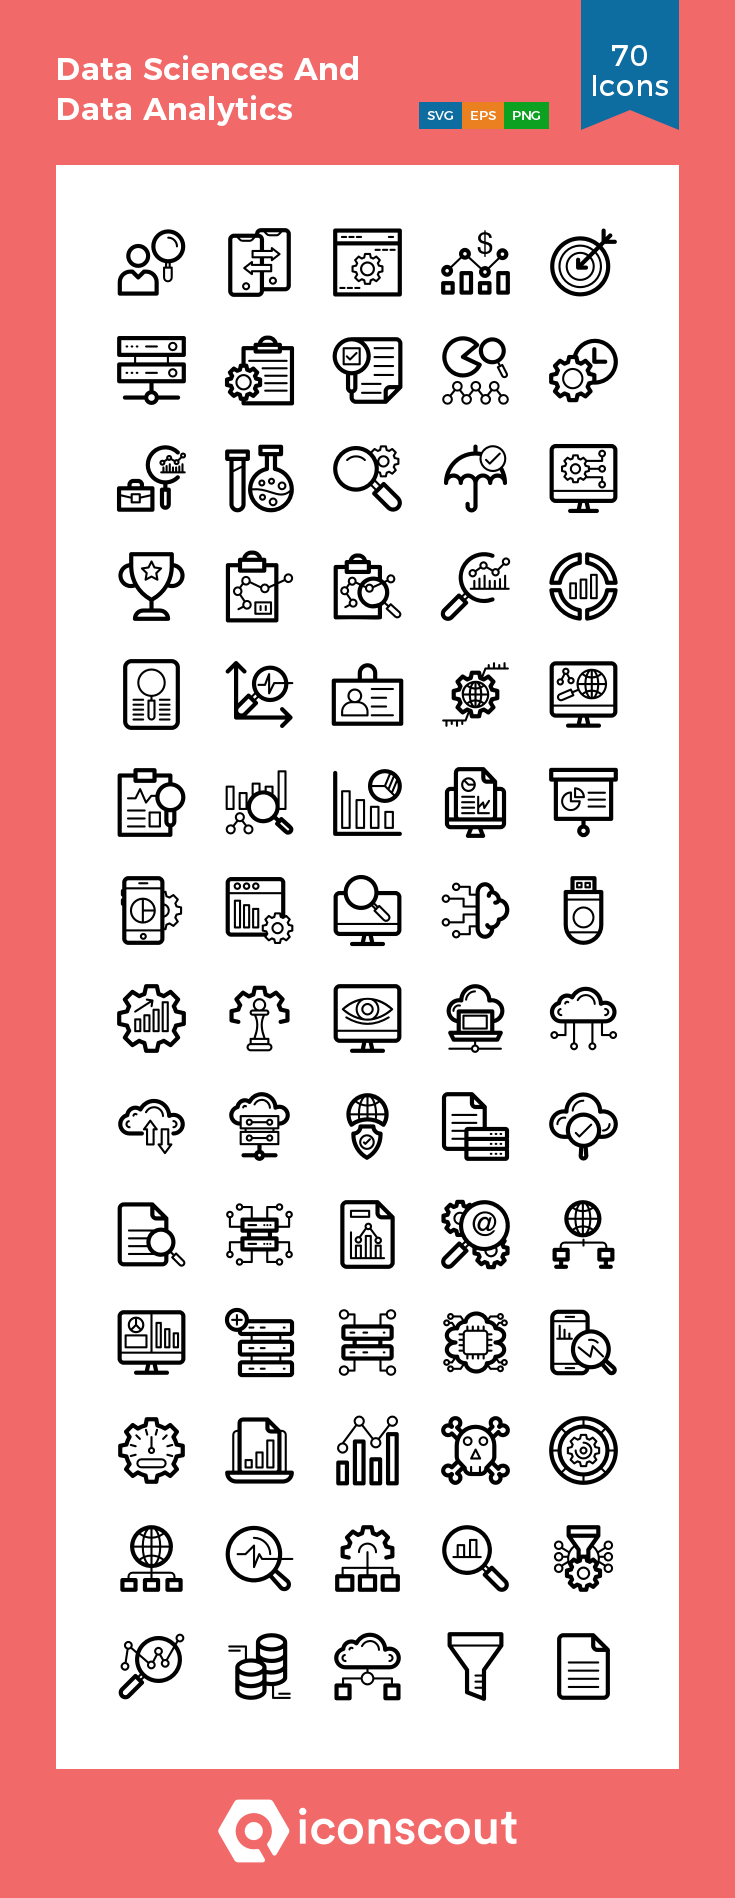 Download Data Sciences And Data Analytics Icon Pack Available In Svg Png Eps Ai Icon Fonts Data Science Data Analytics Data Icon